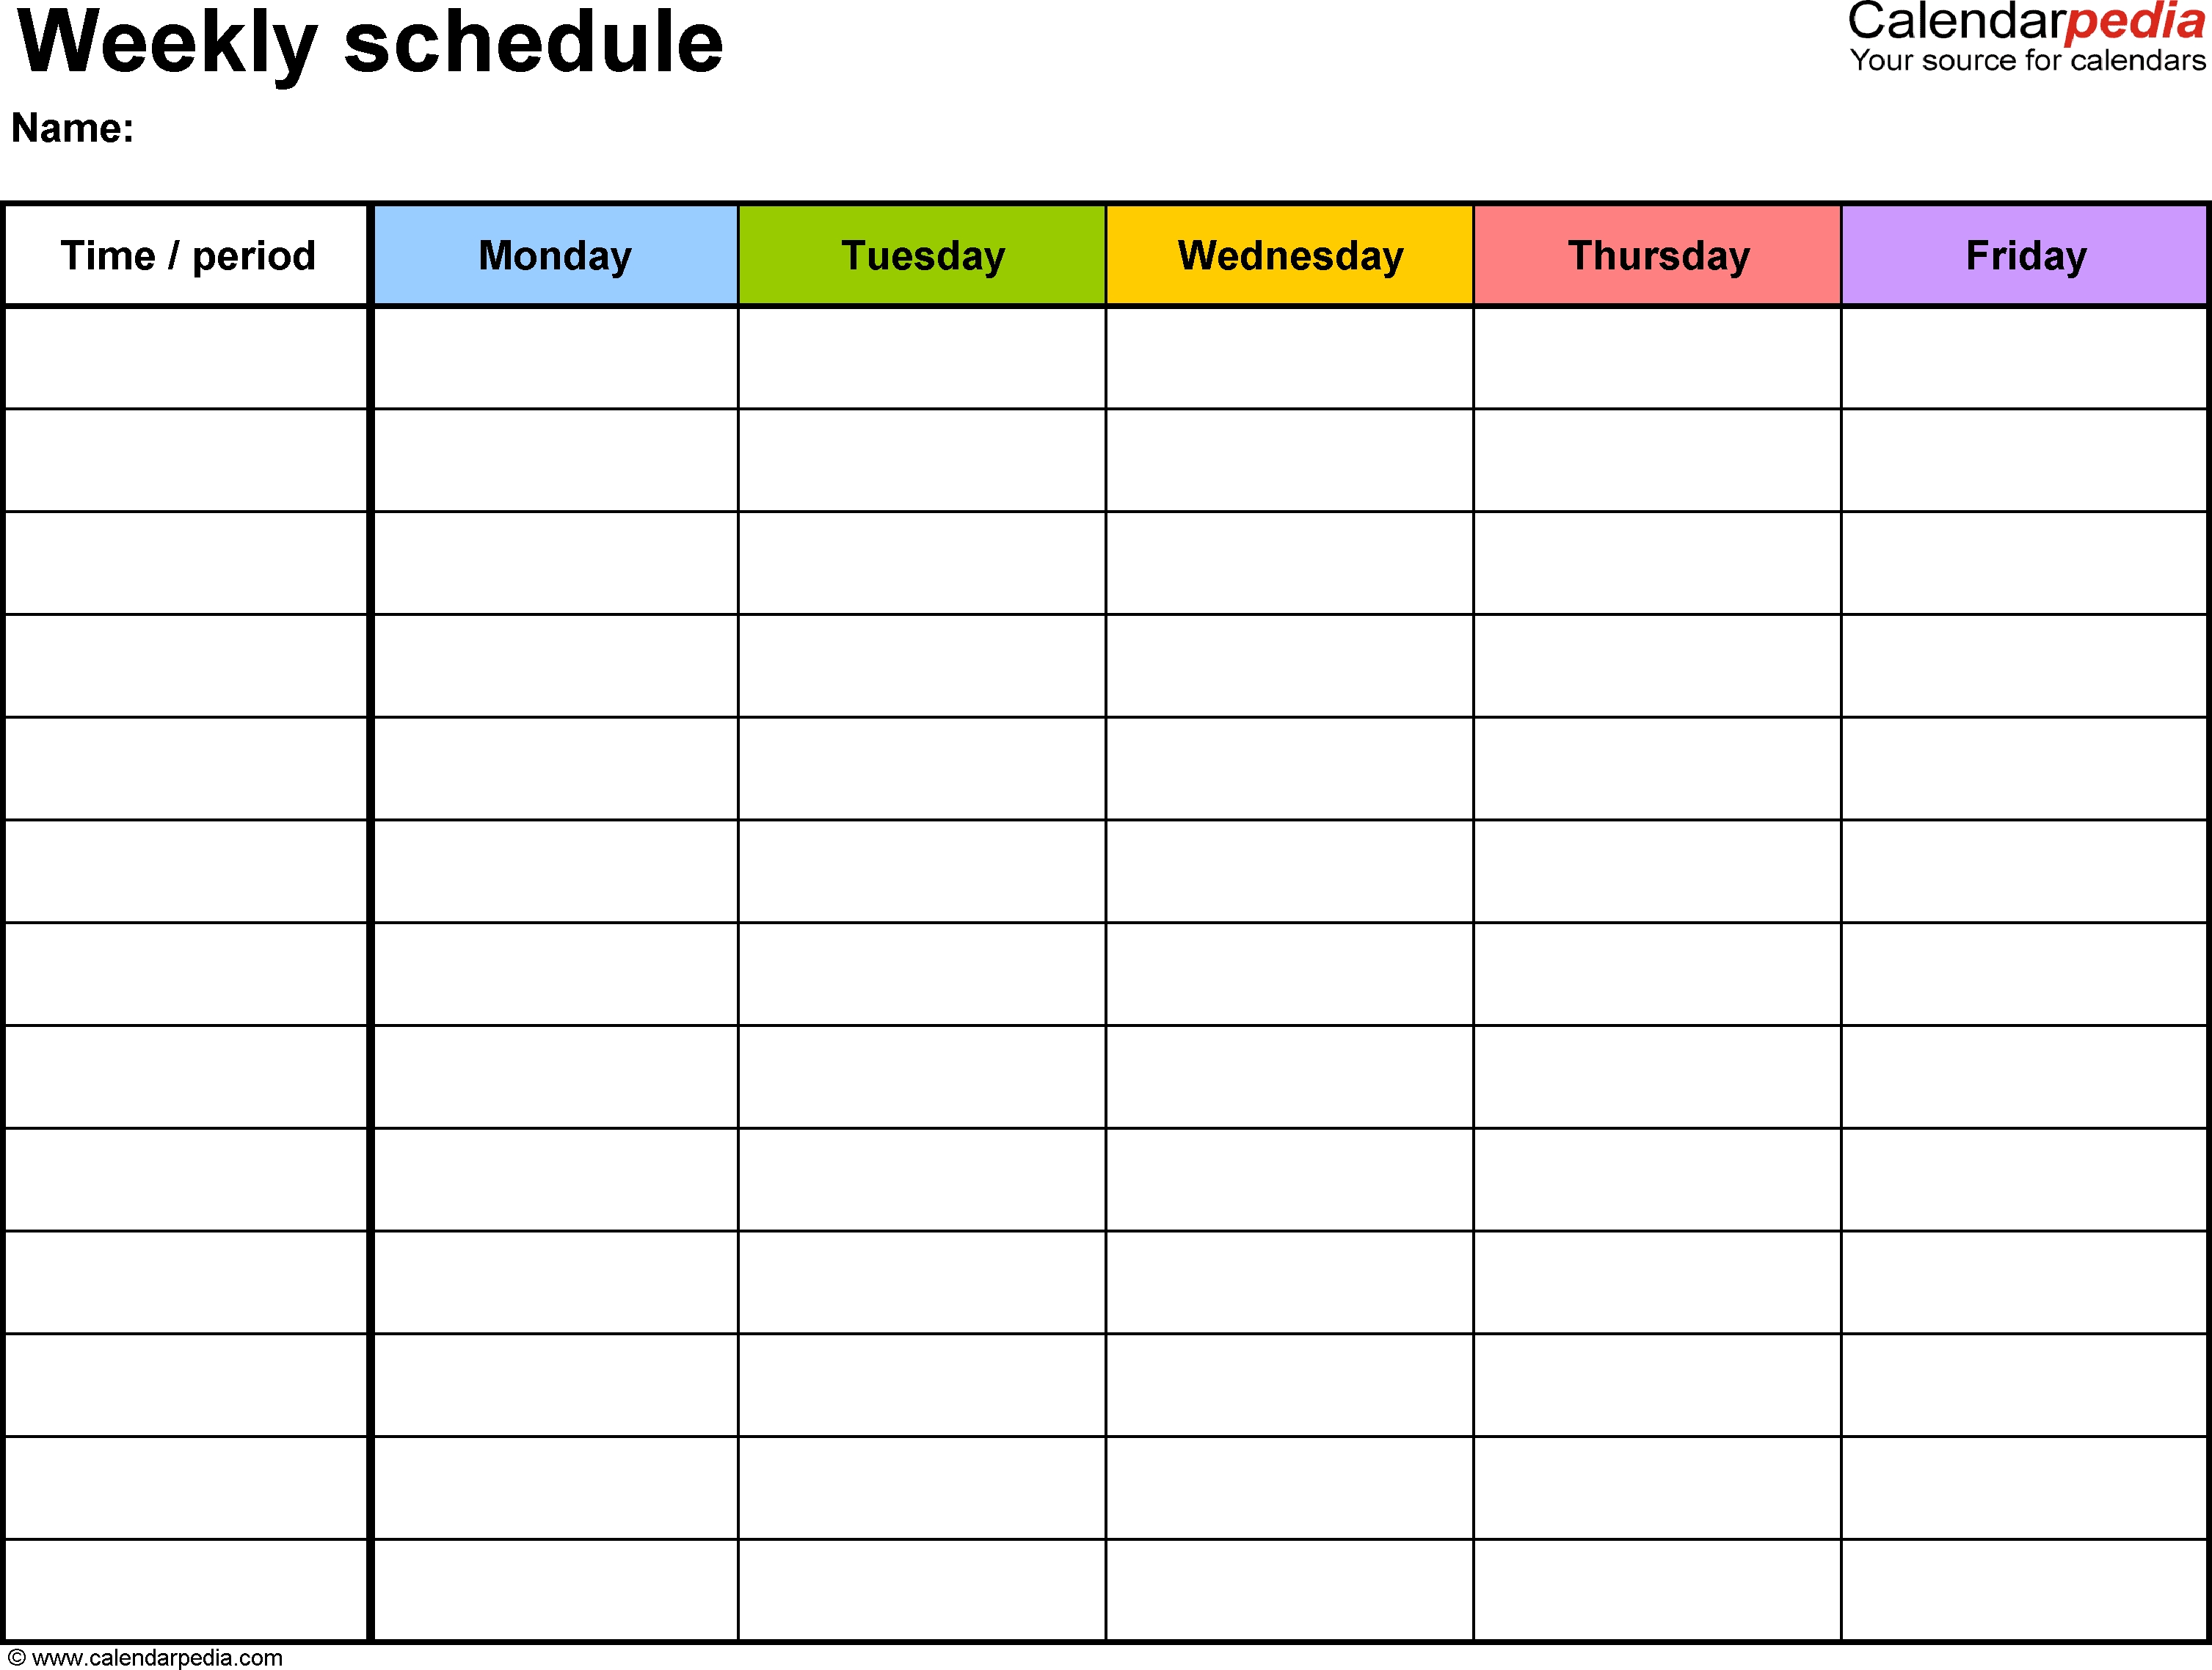 Free Weekly Schedule Templates For Word - 18 Templates pertaining to 2 Week Calendar Template Word